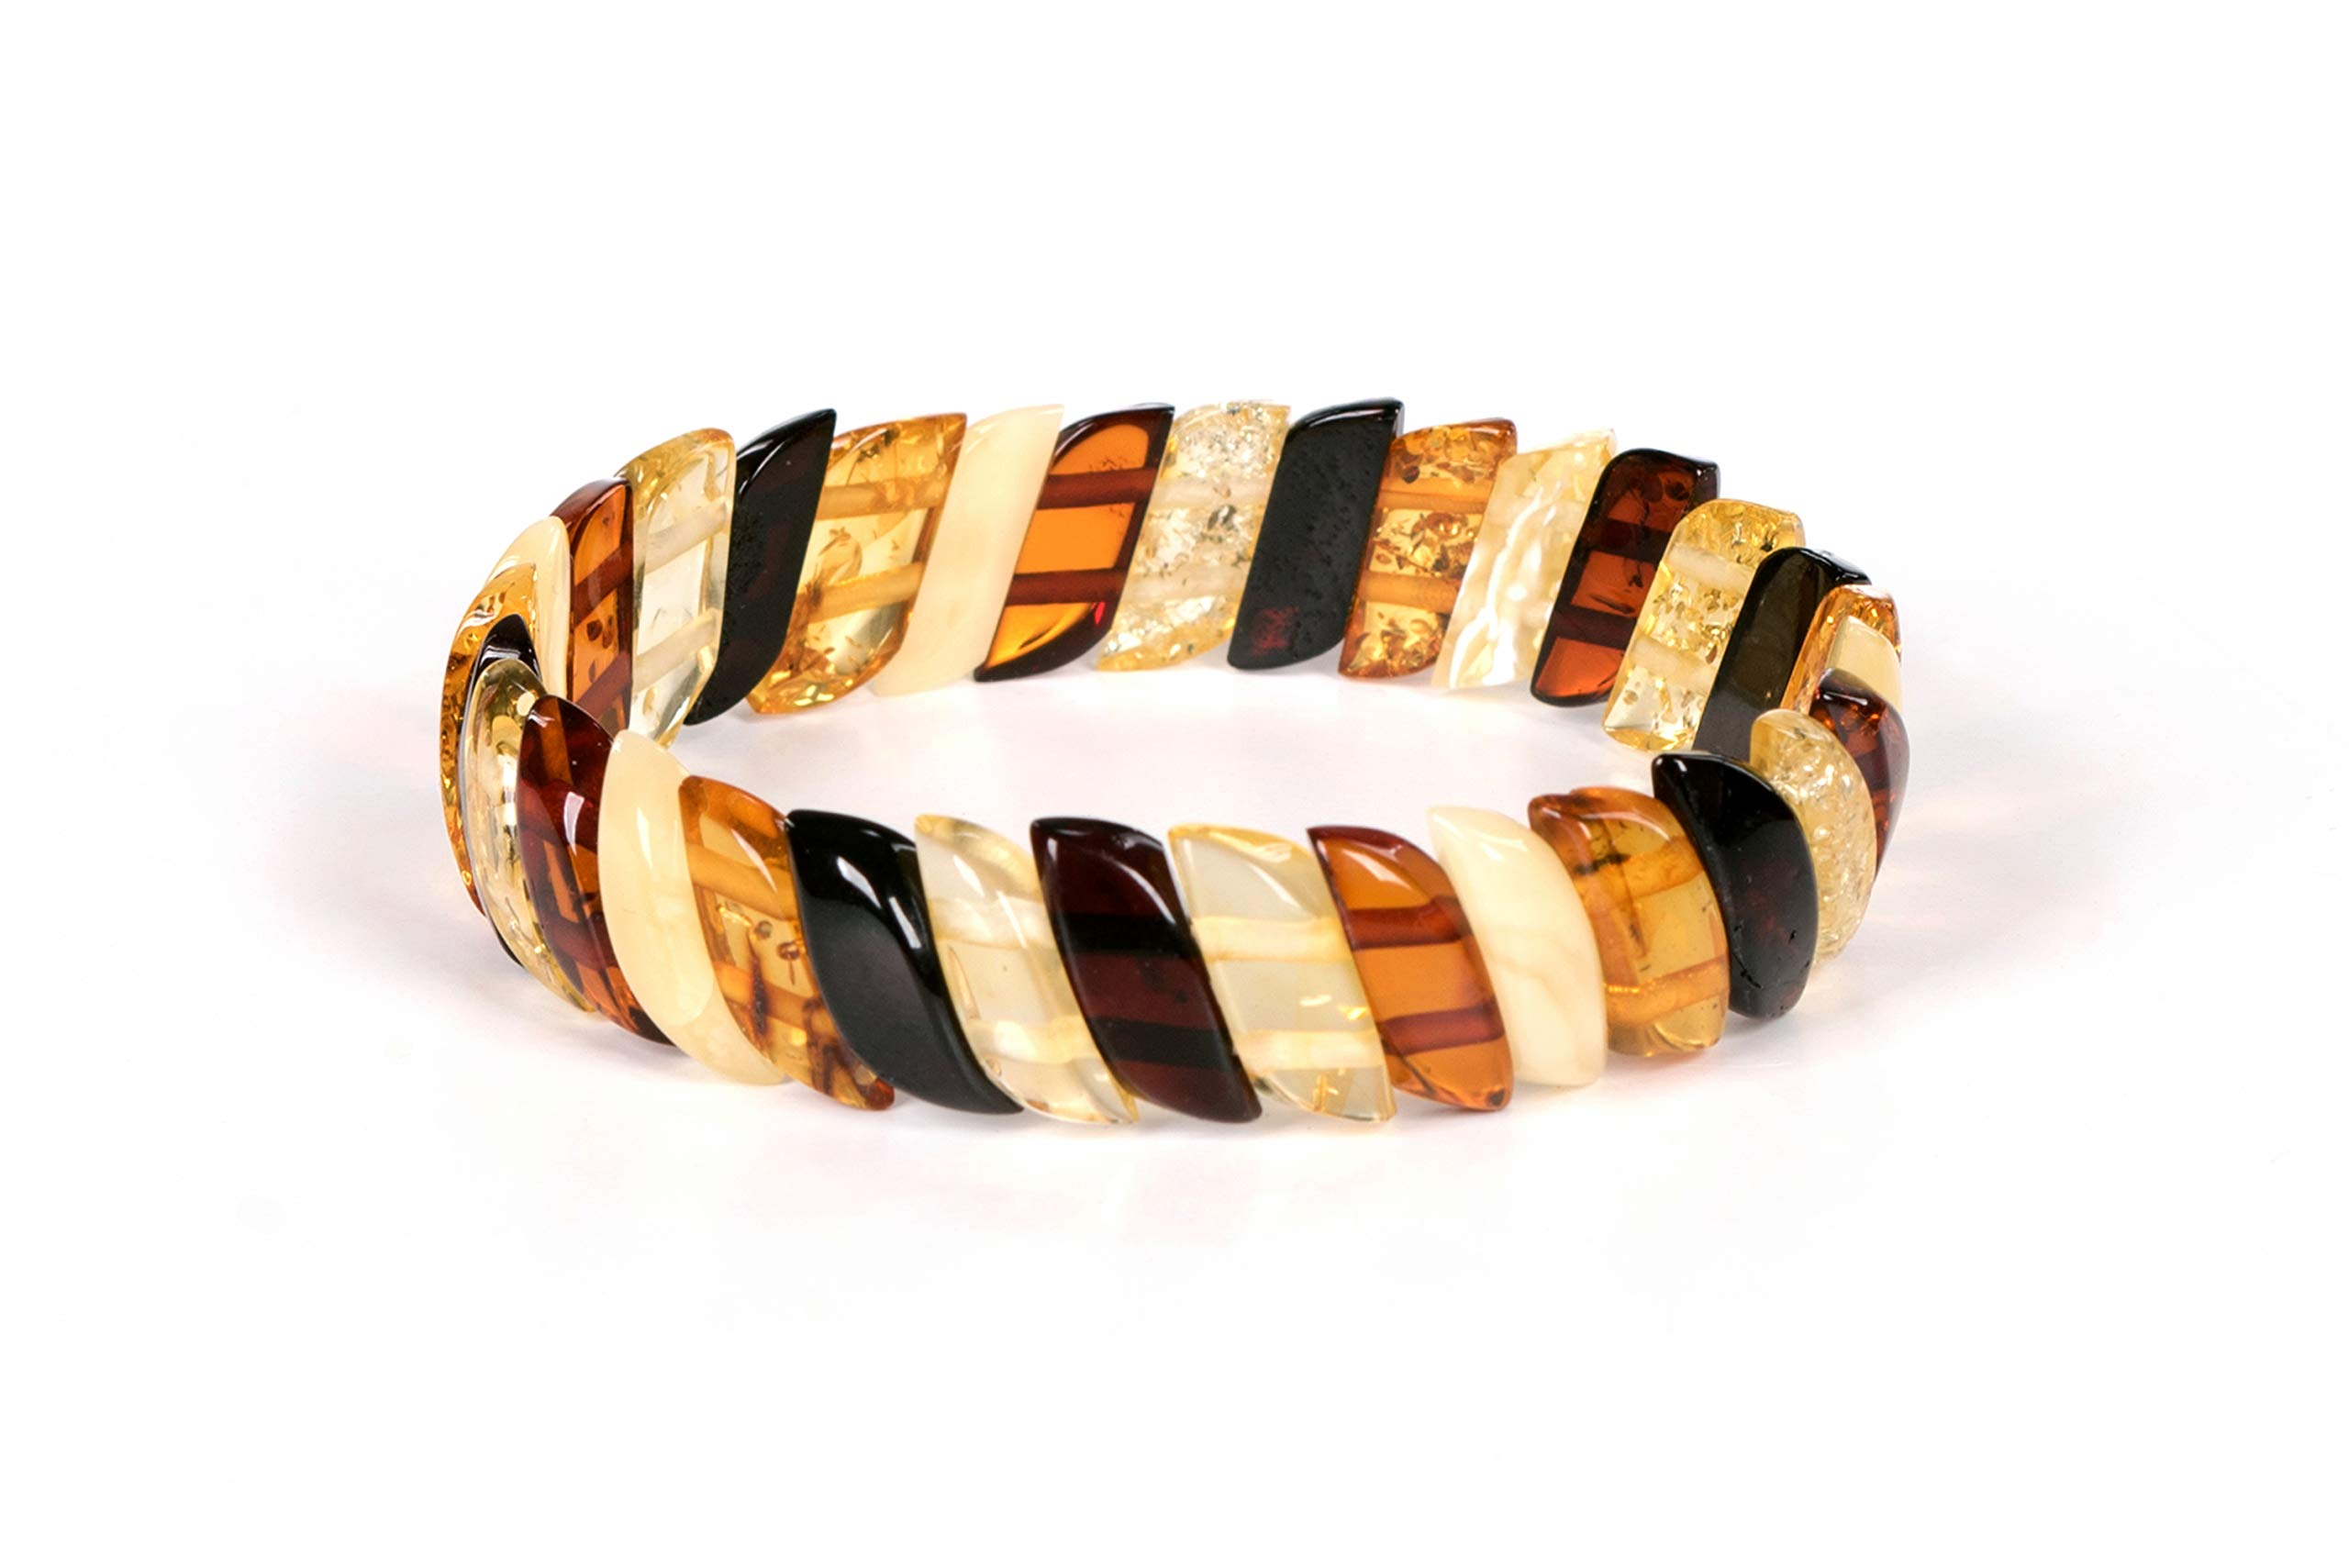 AMBERAGE Natural Baltic Amber Stretch Bracelet for Women - Hand Made from Polished/Certified Baltic Amber Beads(Multi) by AMBERAGE